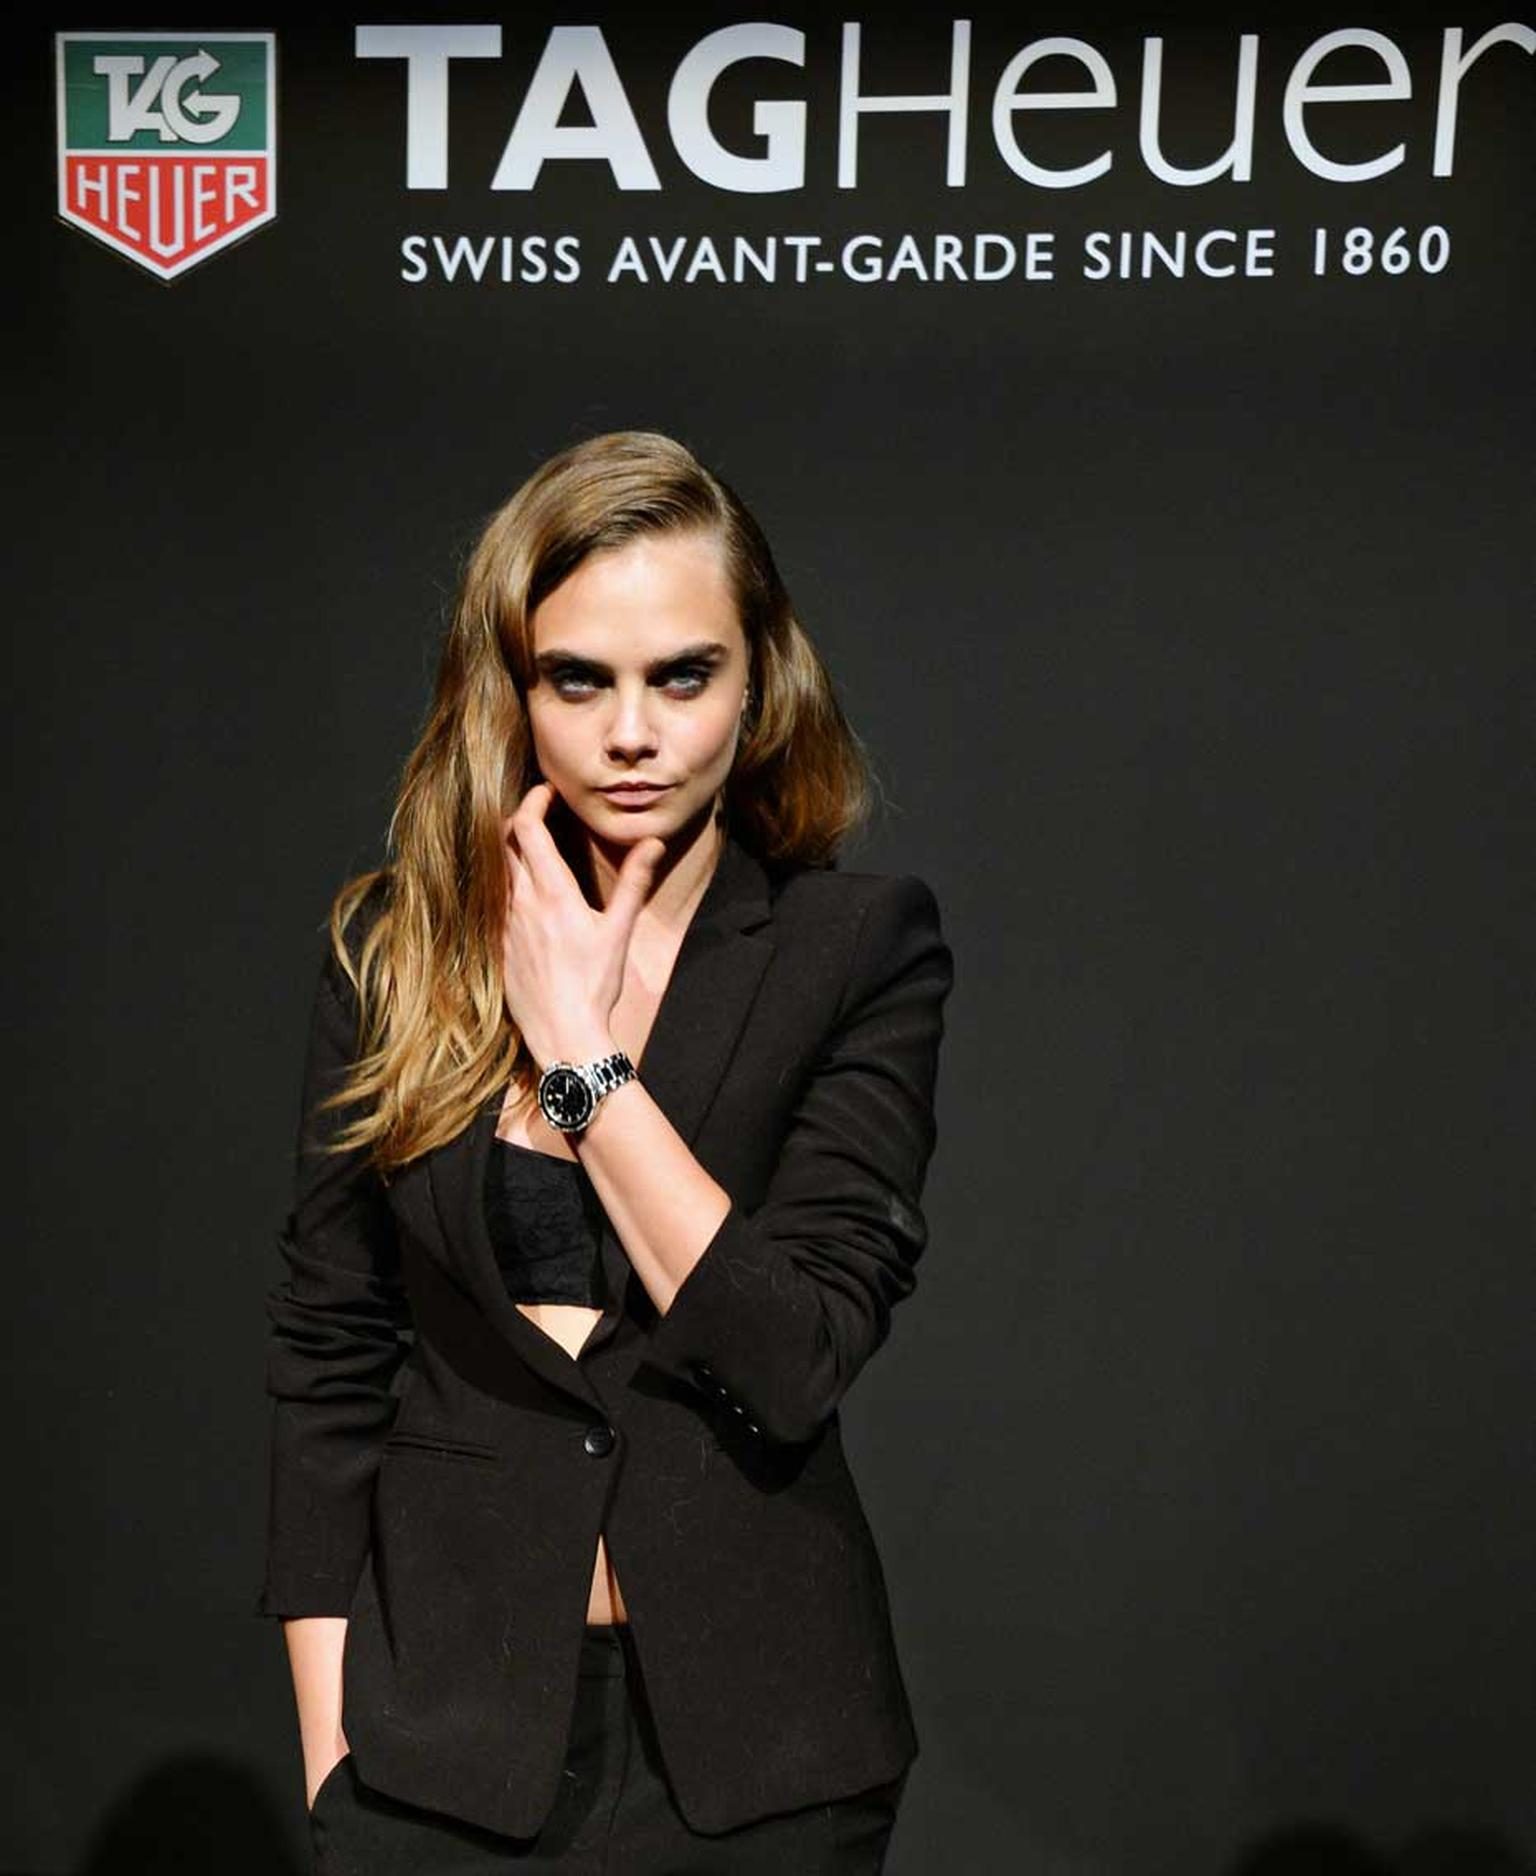 Influential, trend-setting and fresh, Cara Delevigne is a strategic choice for TAG Heuer watches. Women's watch sales at TAG currently account for 37% of the total and Biver wants to get that figure up to 50%